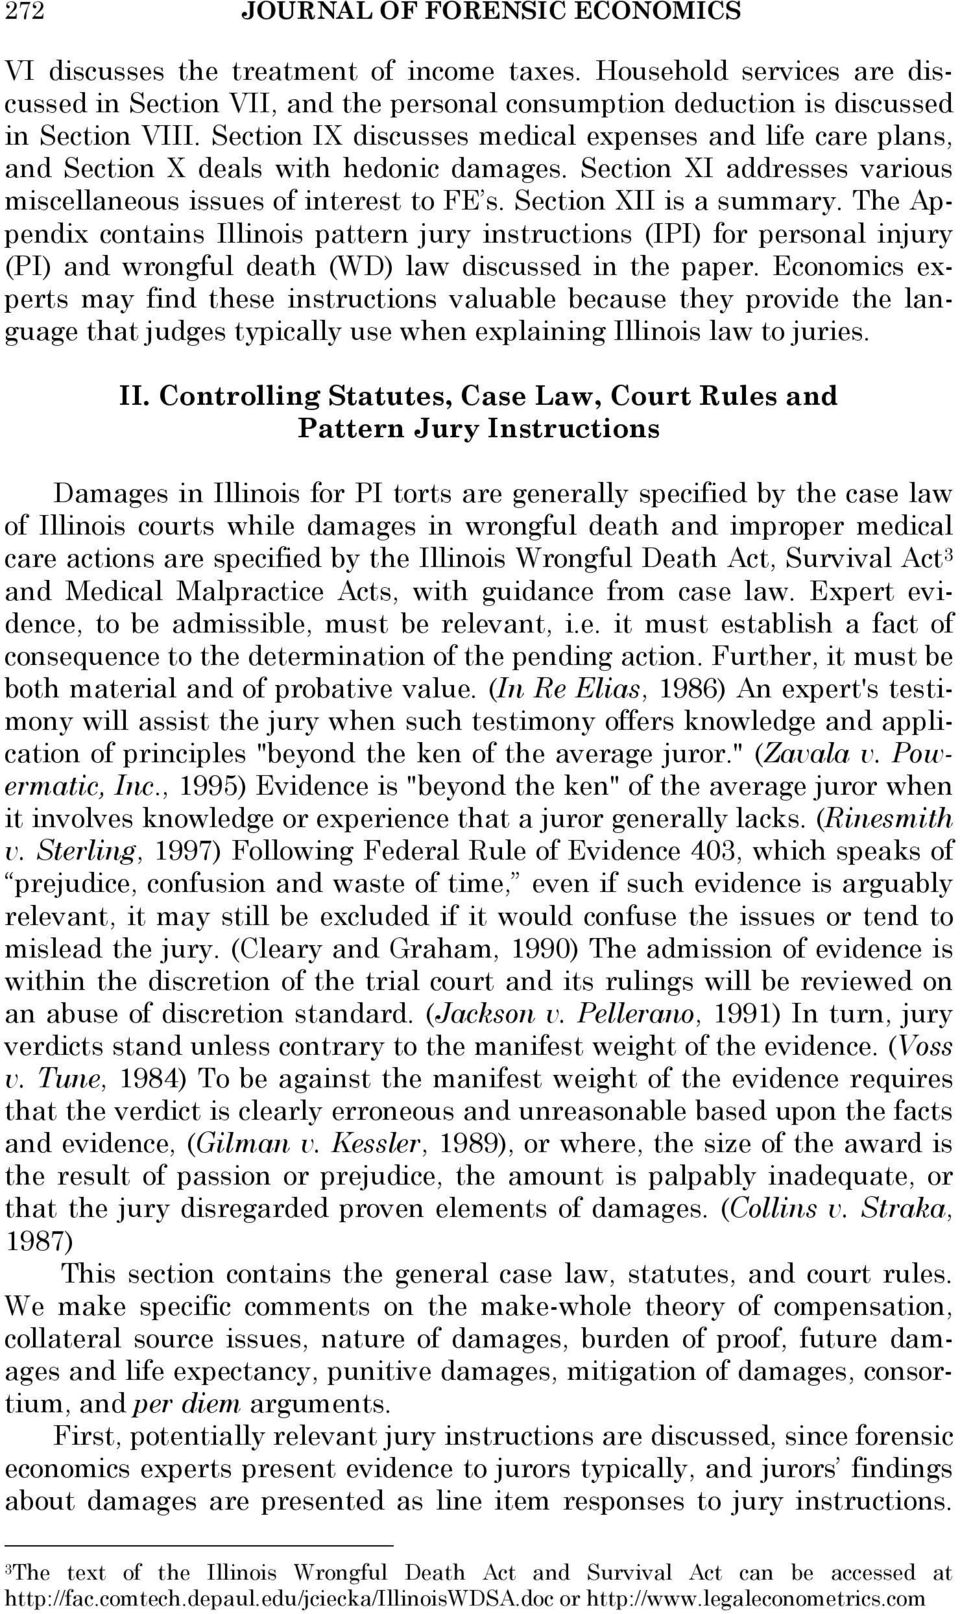 The Appendix contains Illinois pattern jury instructions (IPI) for personal injury (PI) and wrongful death (WD) law discussed in the paper.